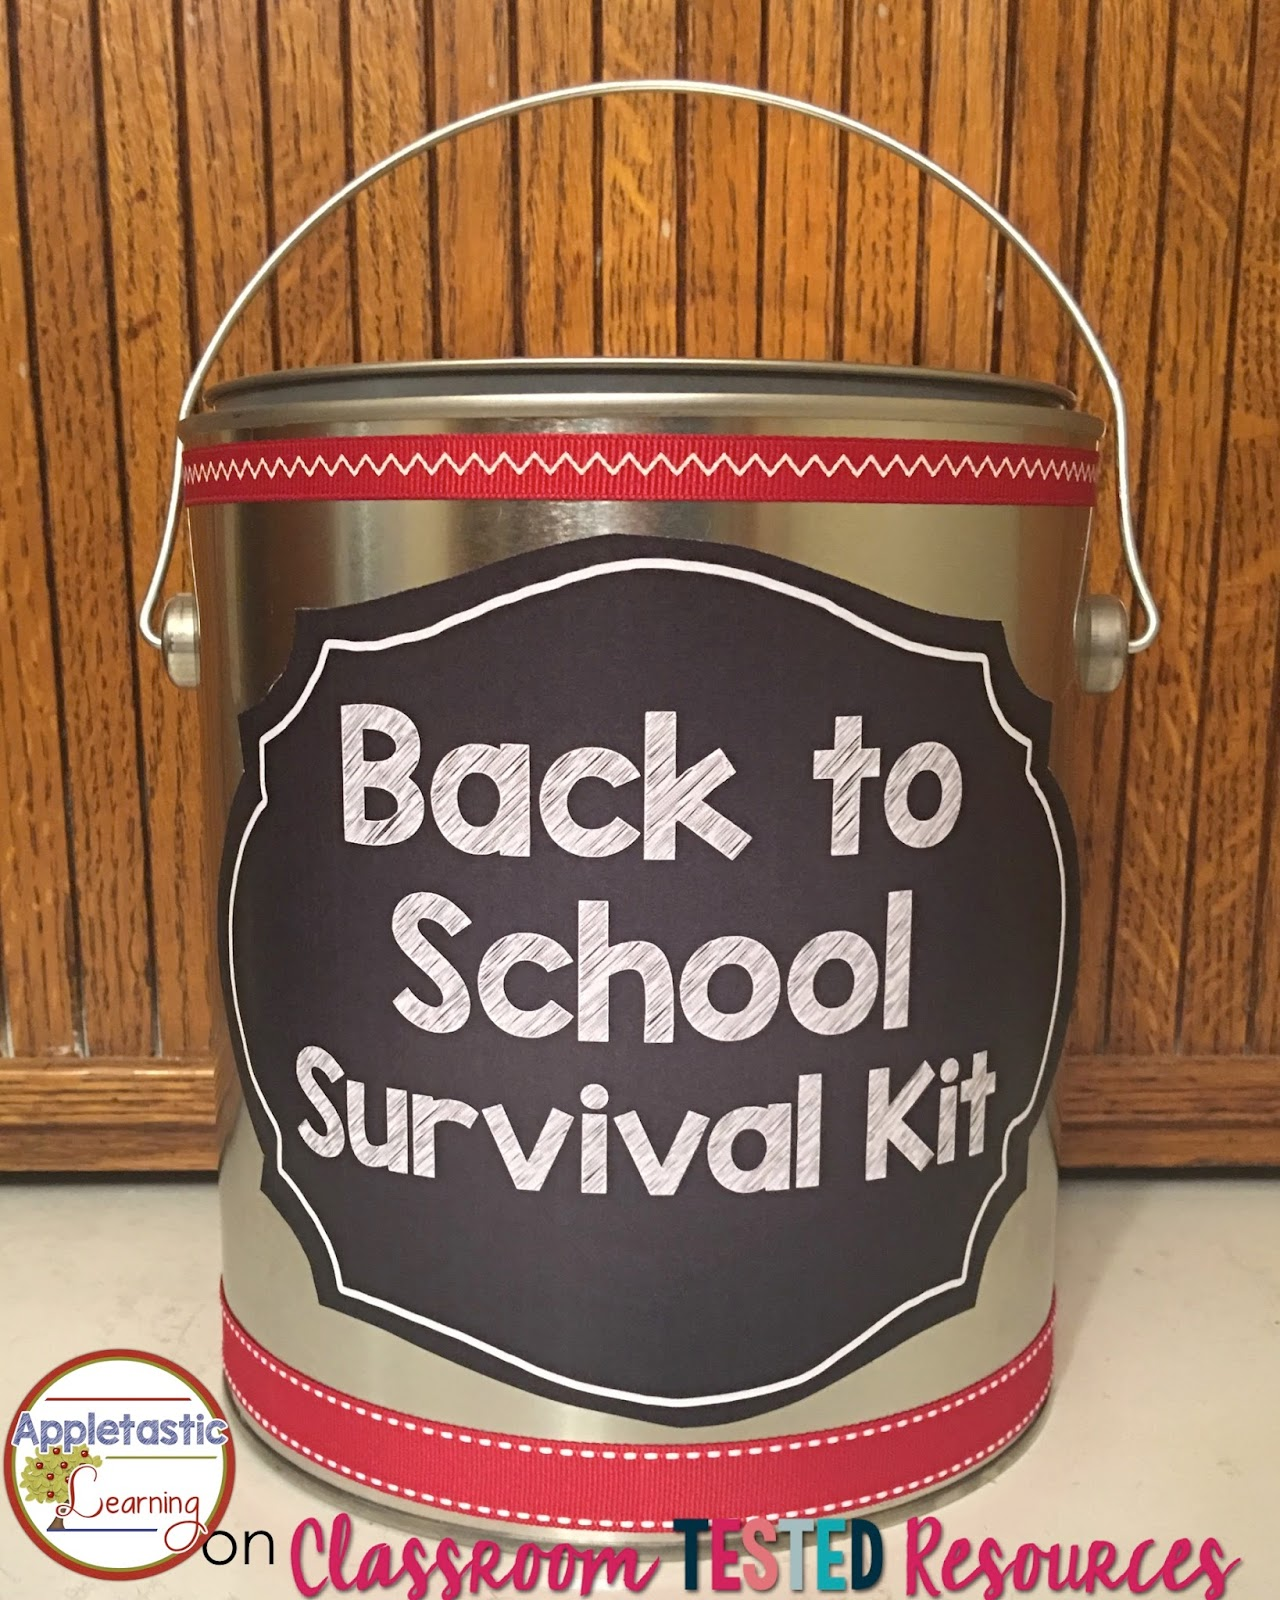 DIY Paint Can Back to School Survival Kit for Teachers - Perfect for teacher gifts